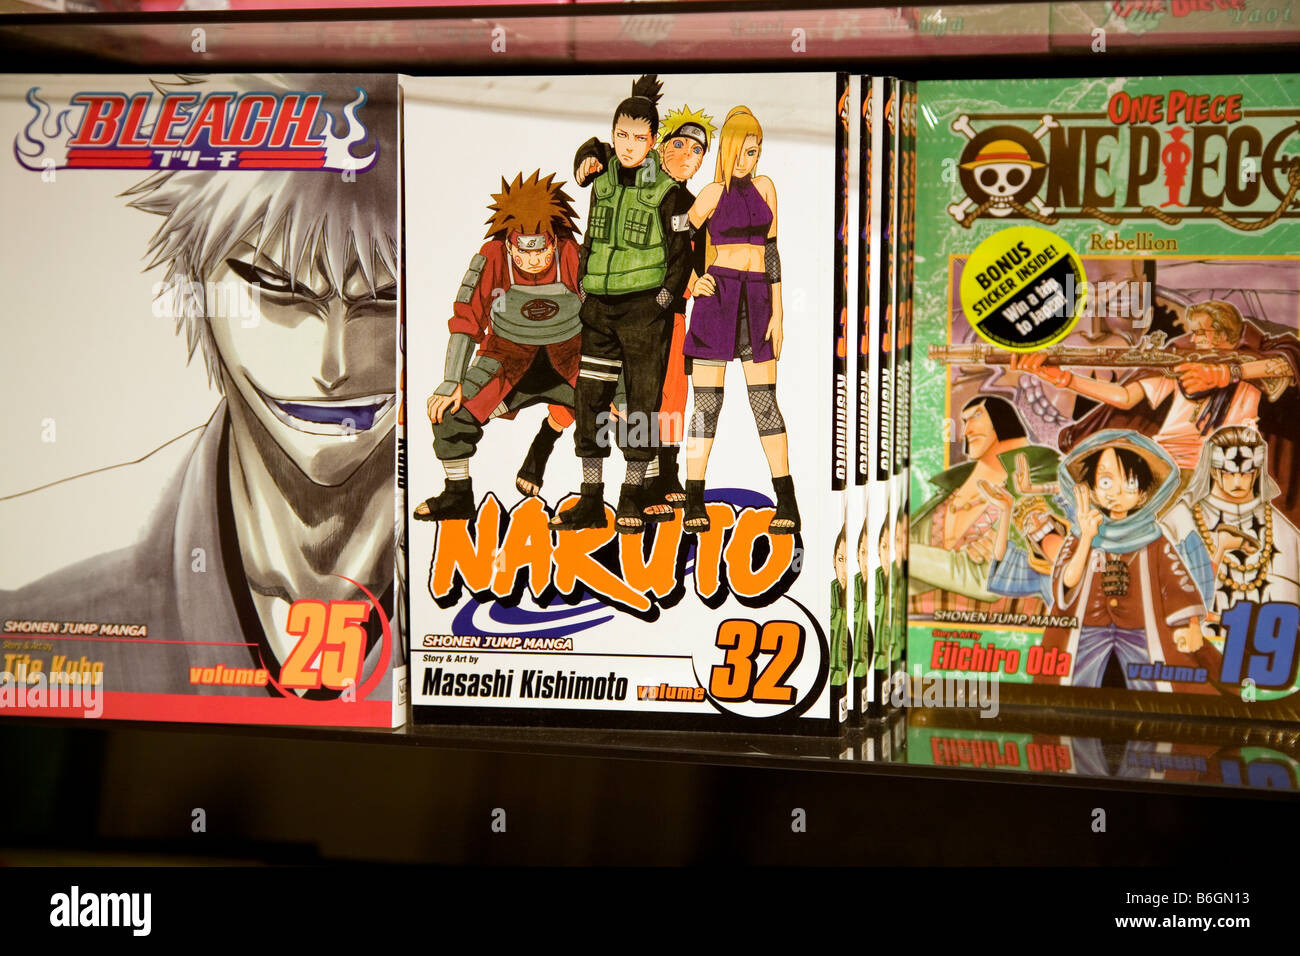 Manga-Comics auf dem Regal in Gosh Comic-Shop in London Stockbild